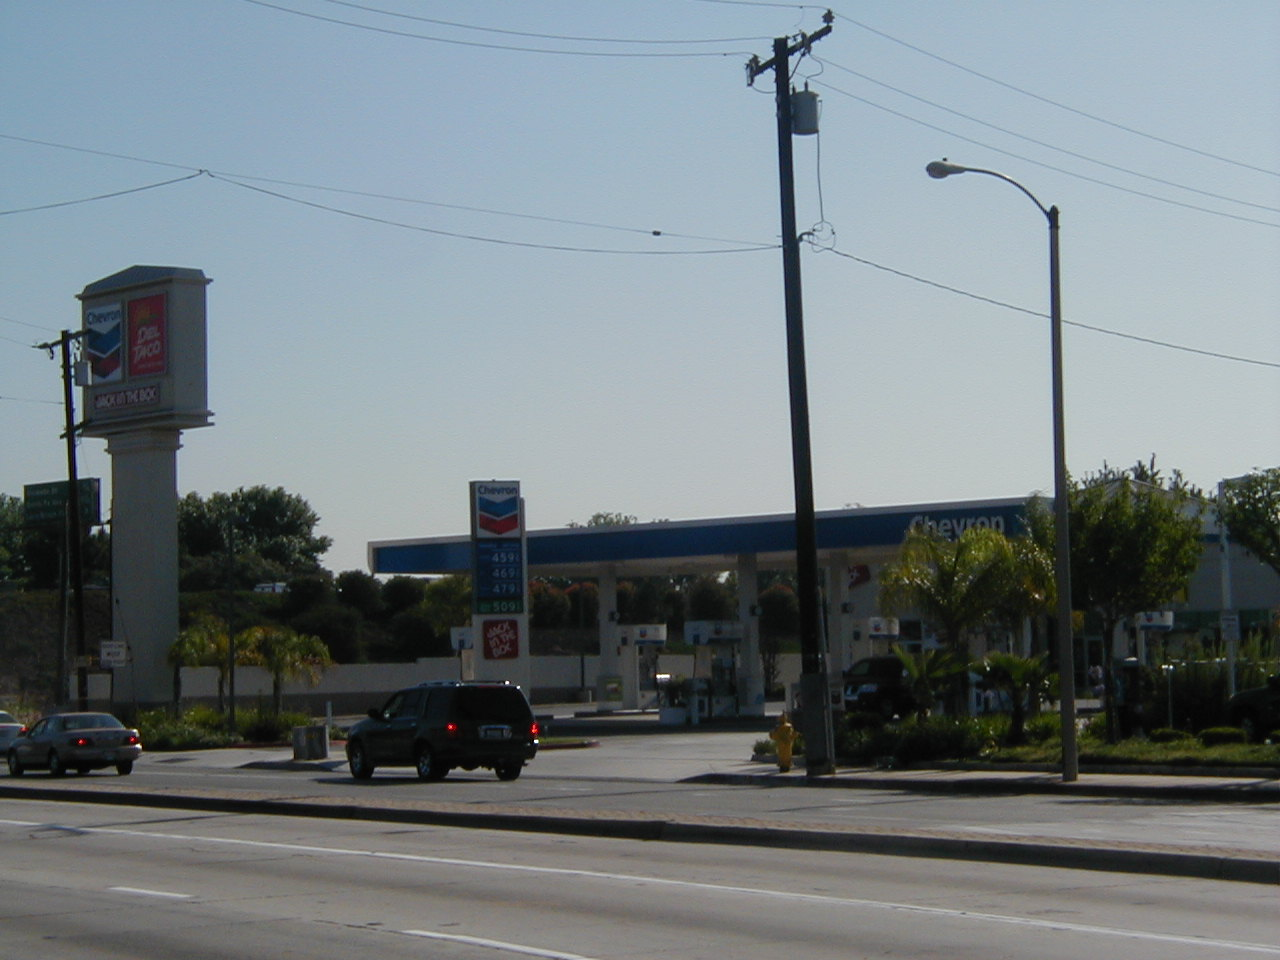 City of Carson Gas Station Locations